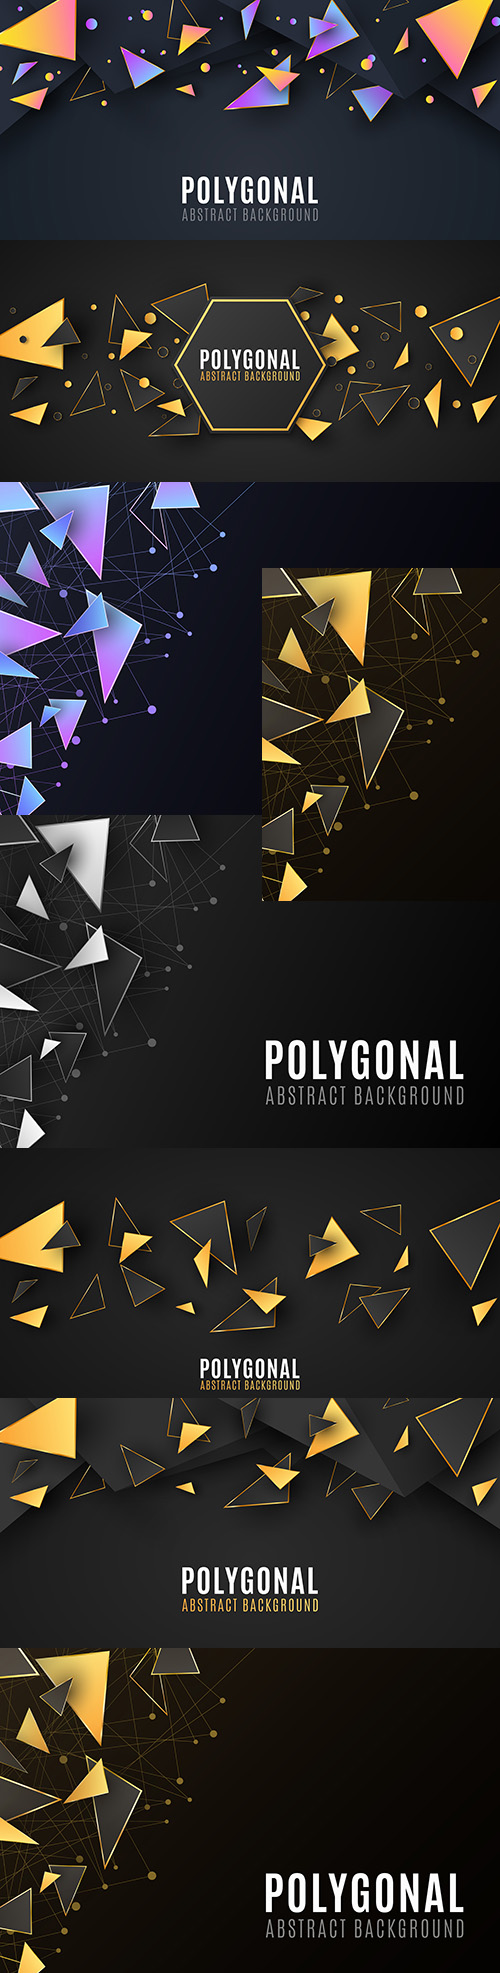 Polygon abstract background stylish design